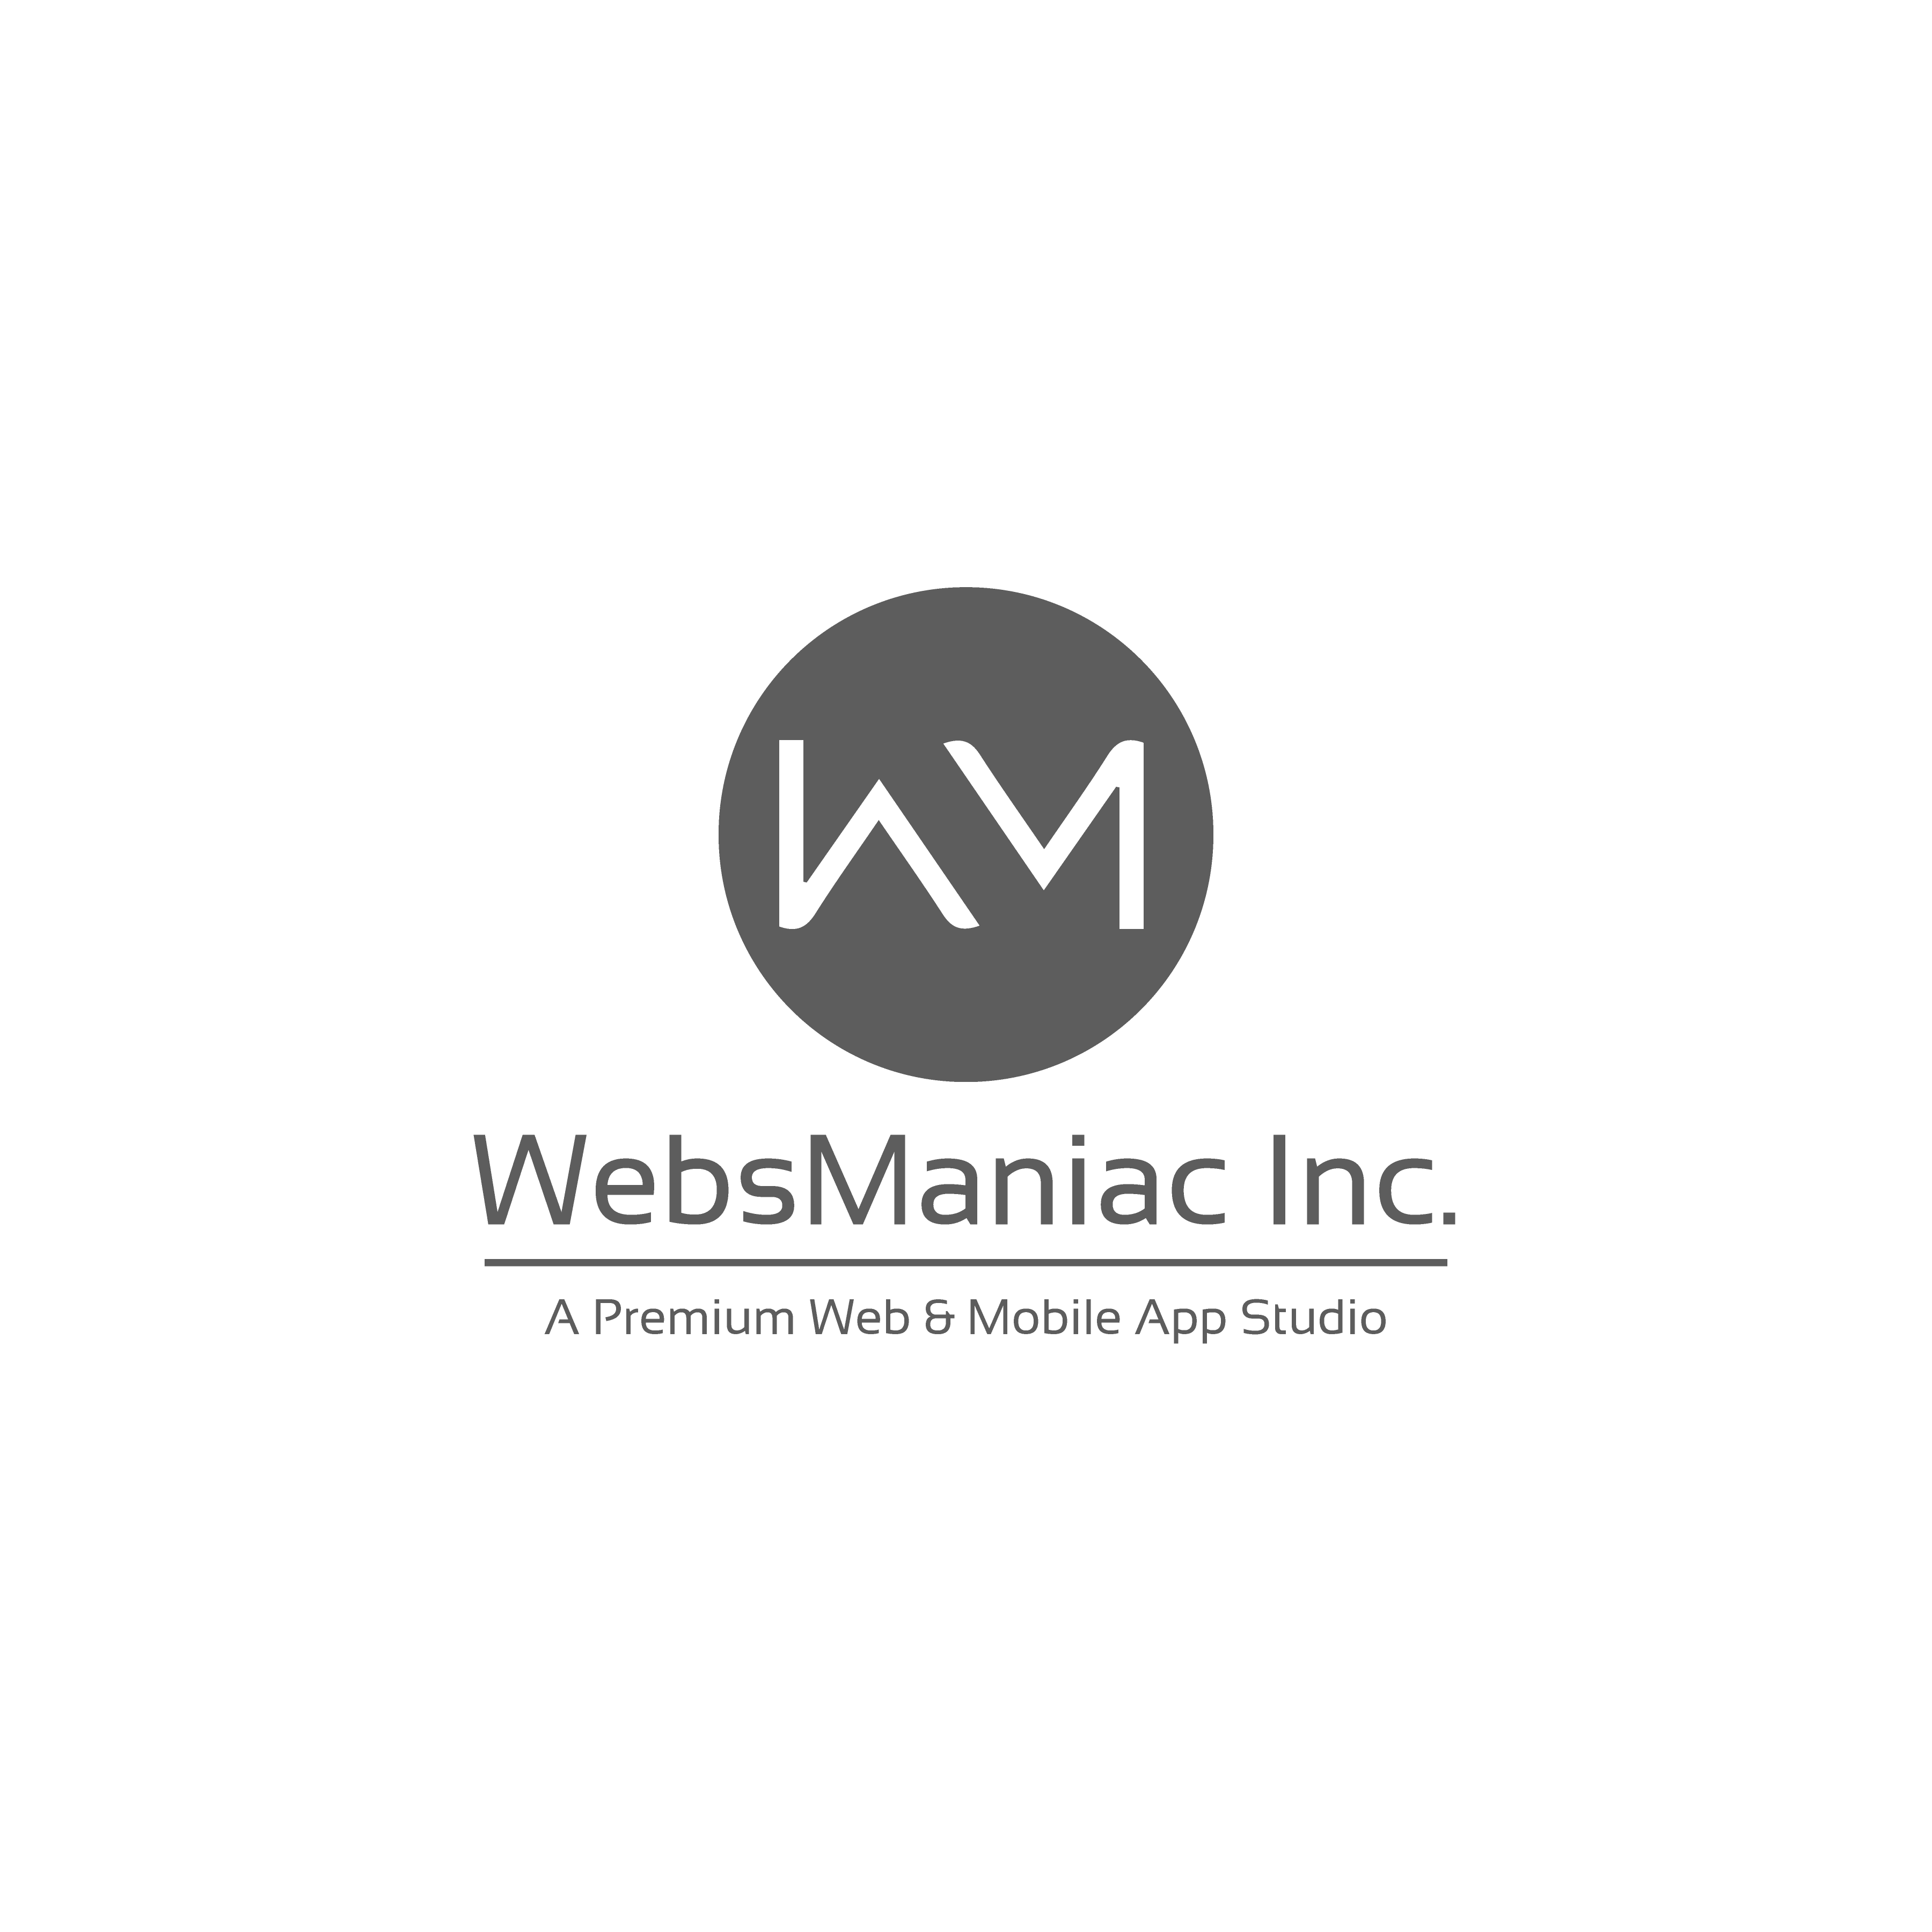 WebsManiac Inc.